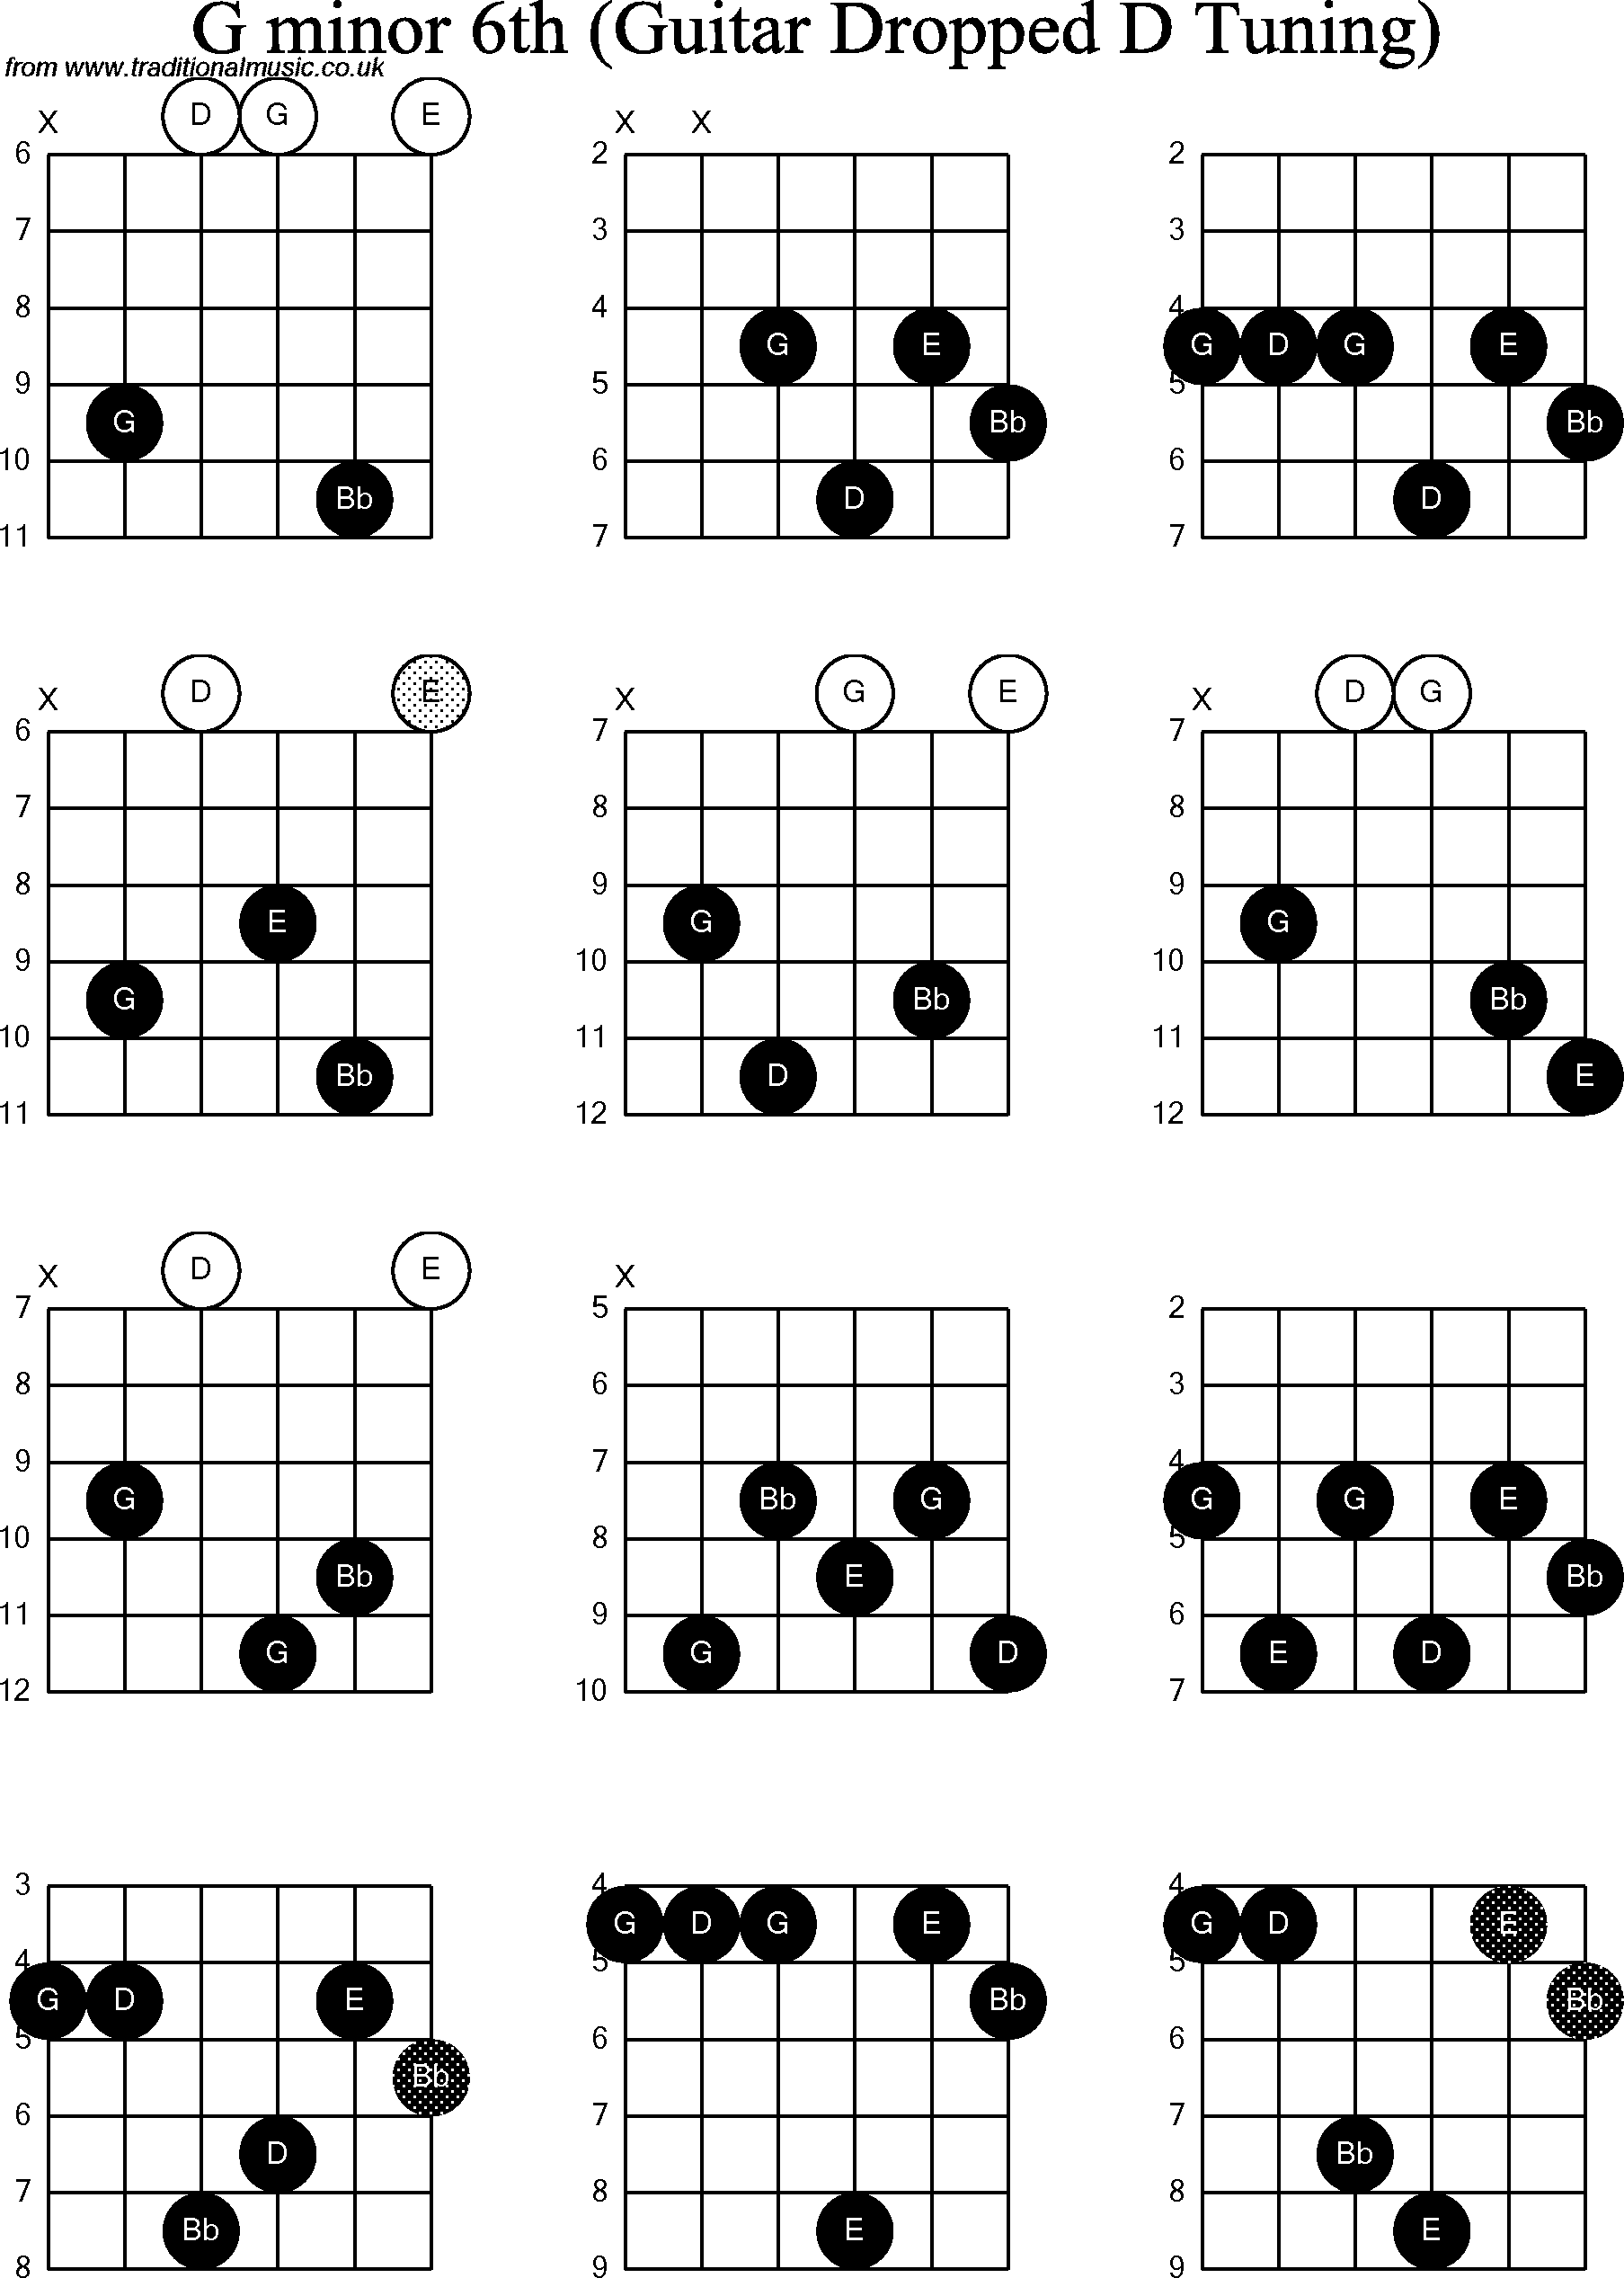 Chord Diagrams For Dropped D Guitardadgbe G Minor6th